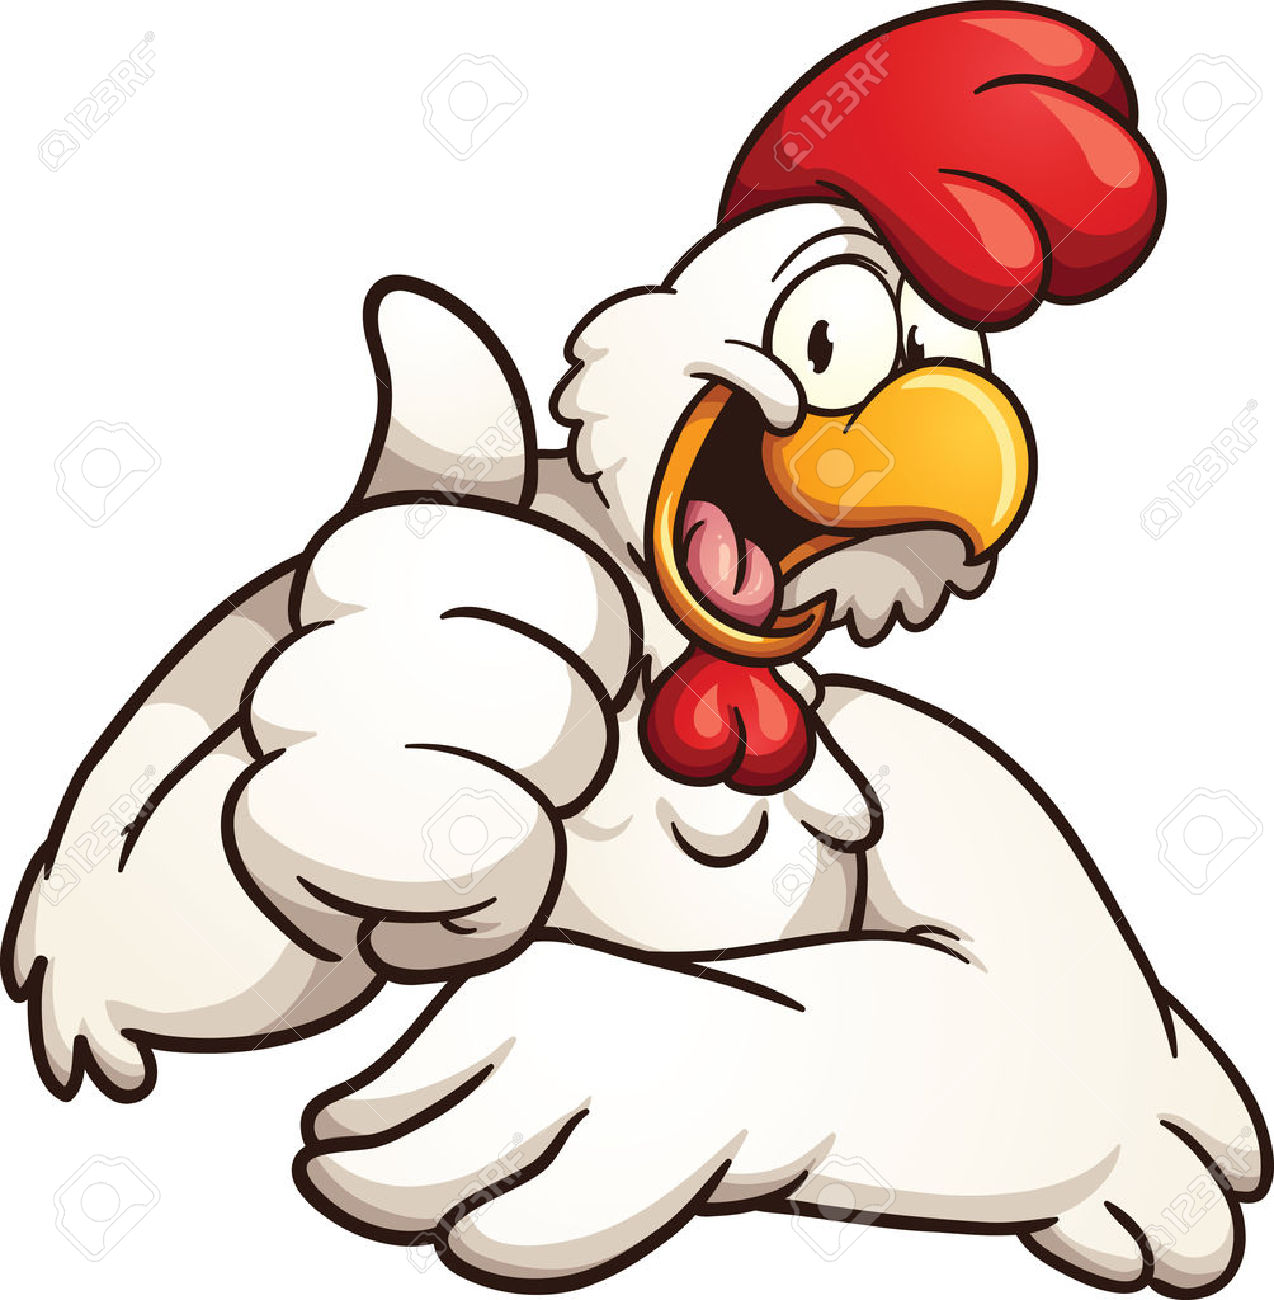 1274x1300 Cartoon Chicken Giving The Thumbs Up. Vector Clip Art Illustration